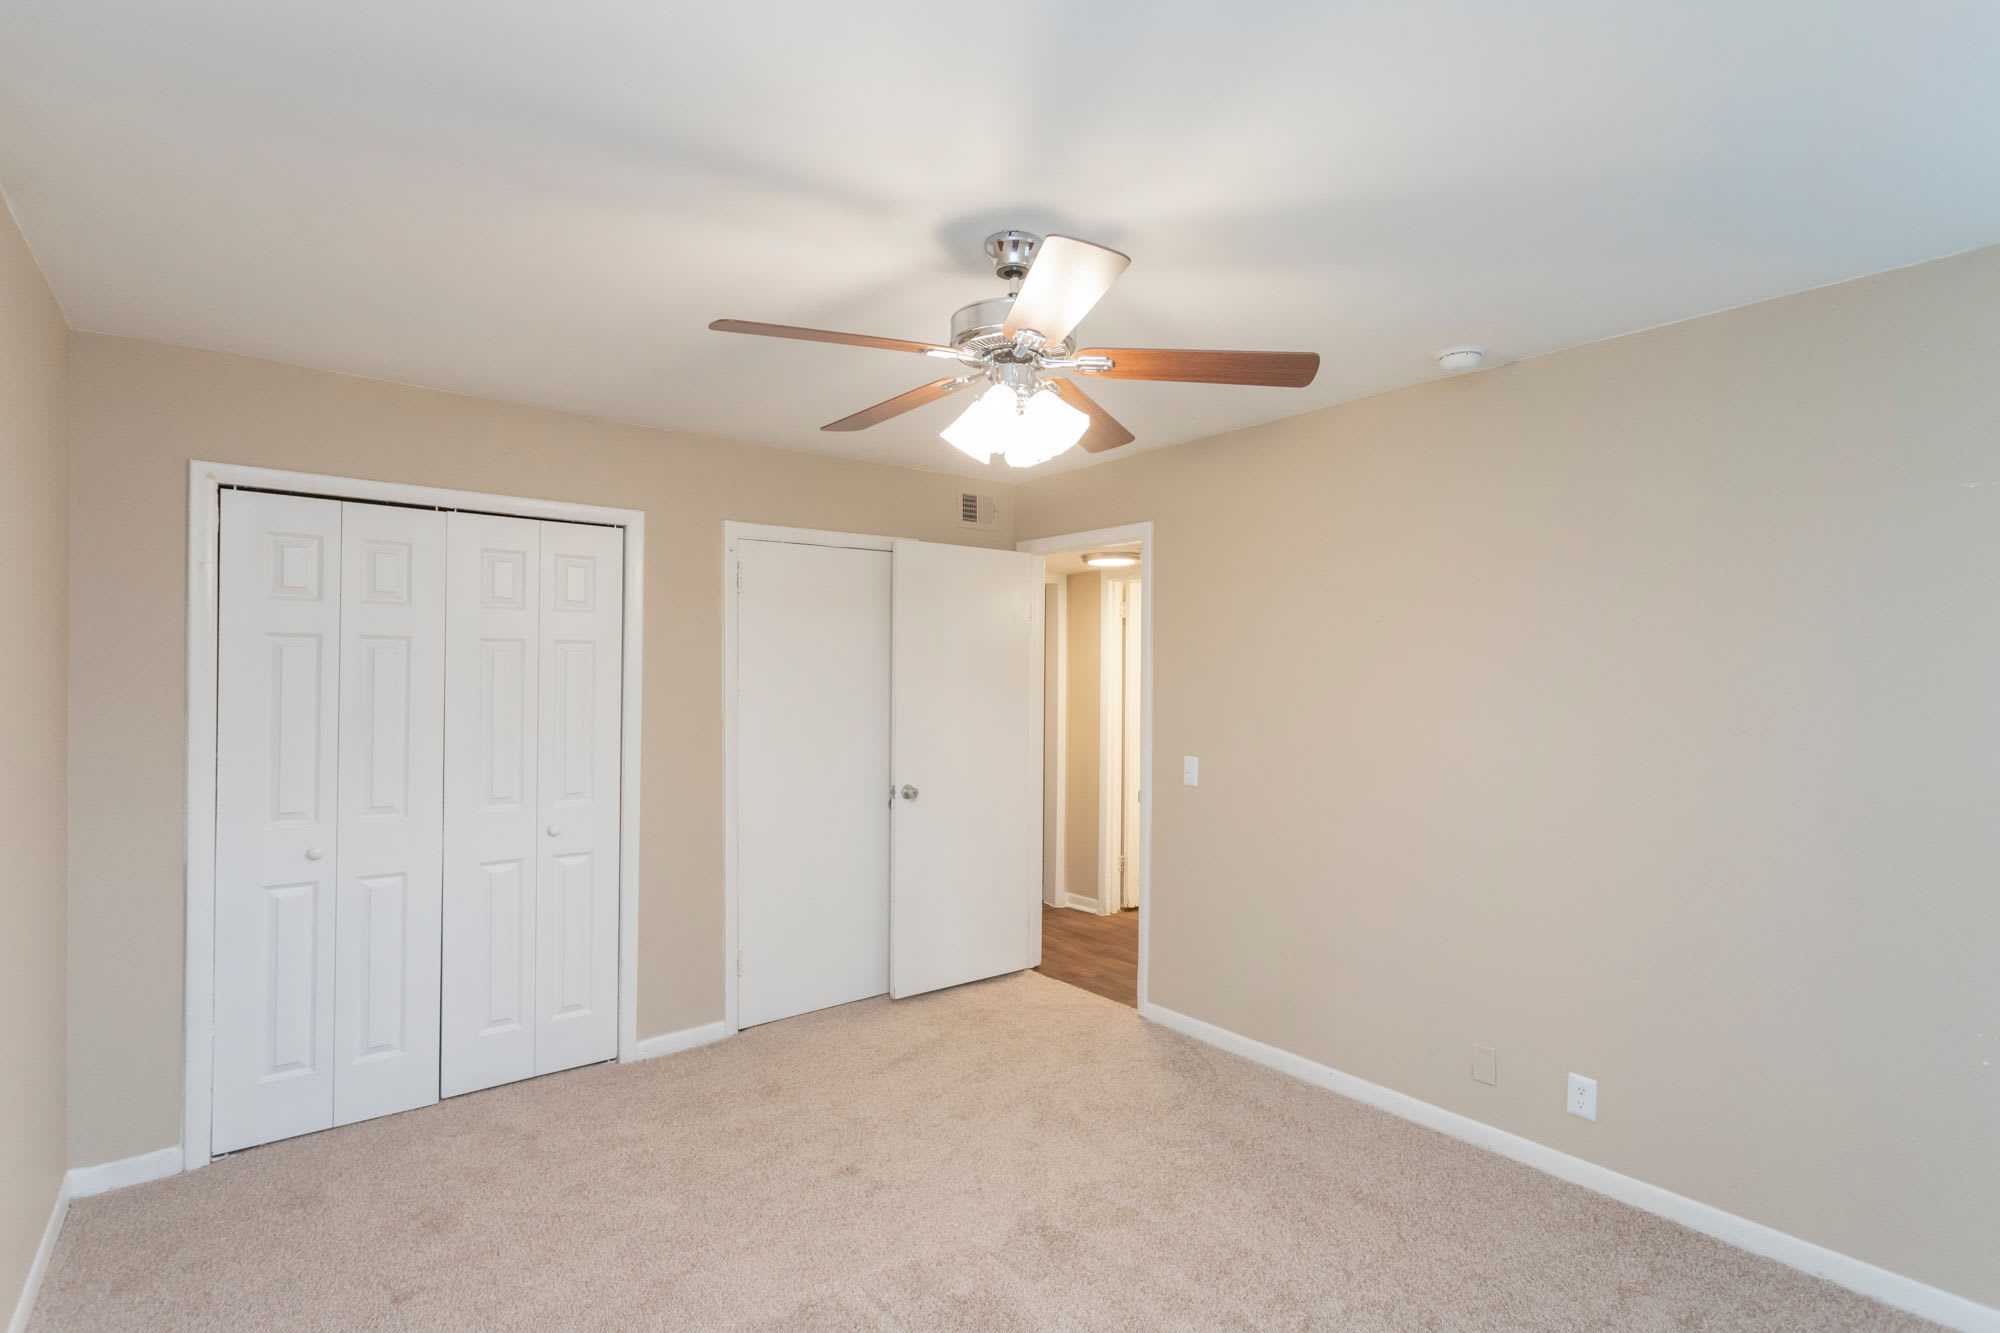 Bedroom and closets with ceiling fan at Maple Creek in Nashville, Tennessee